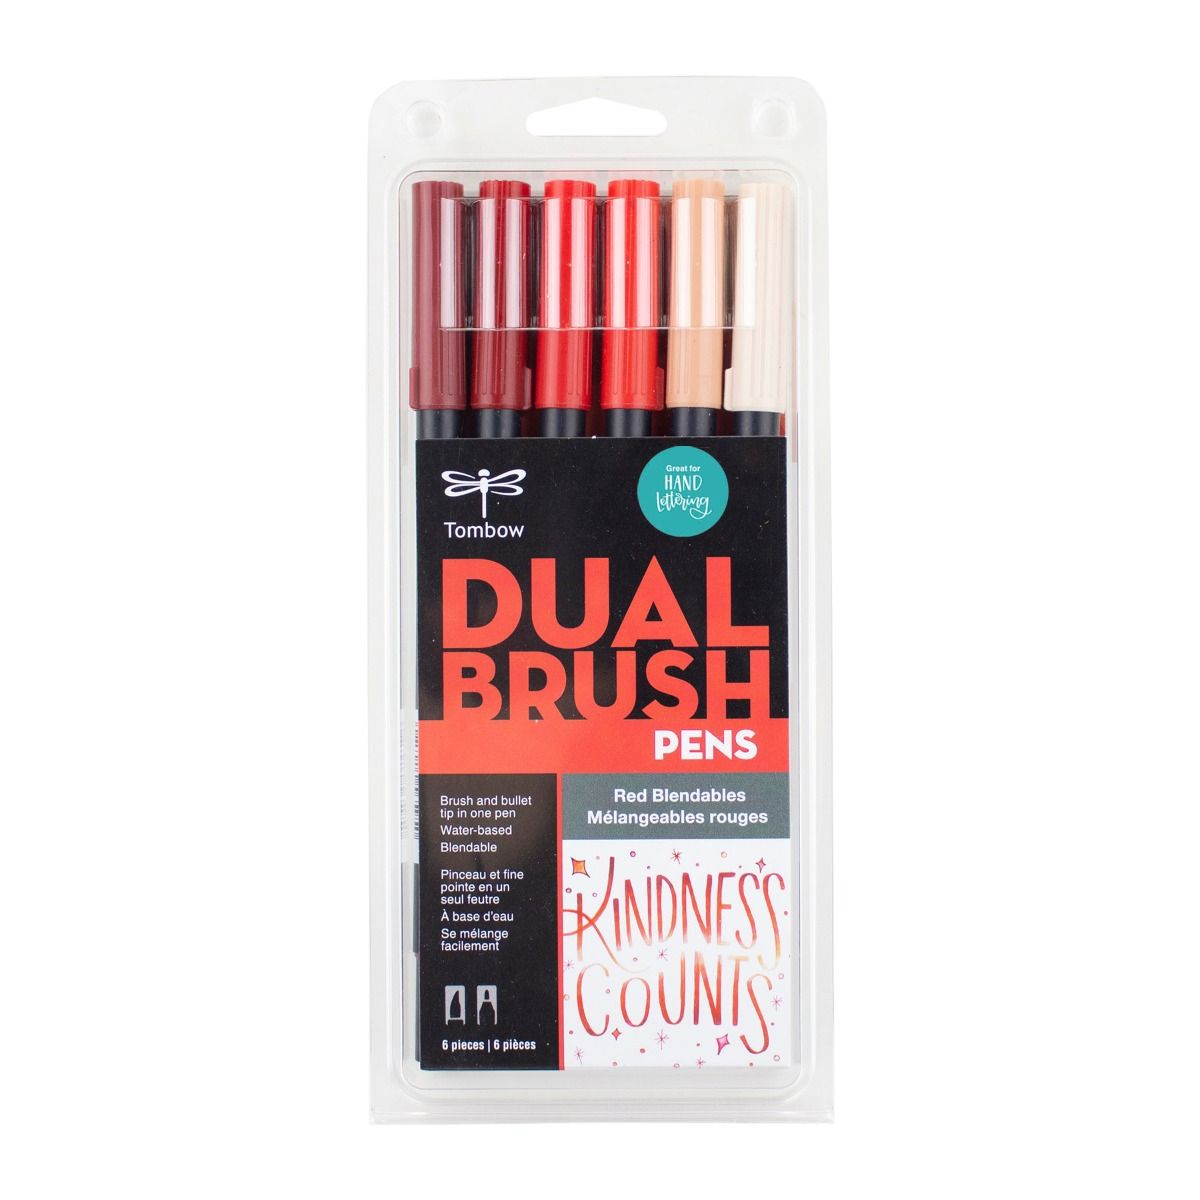 Red Blendables 6-Pack - Dual Brush Pens